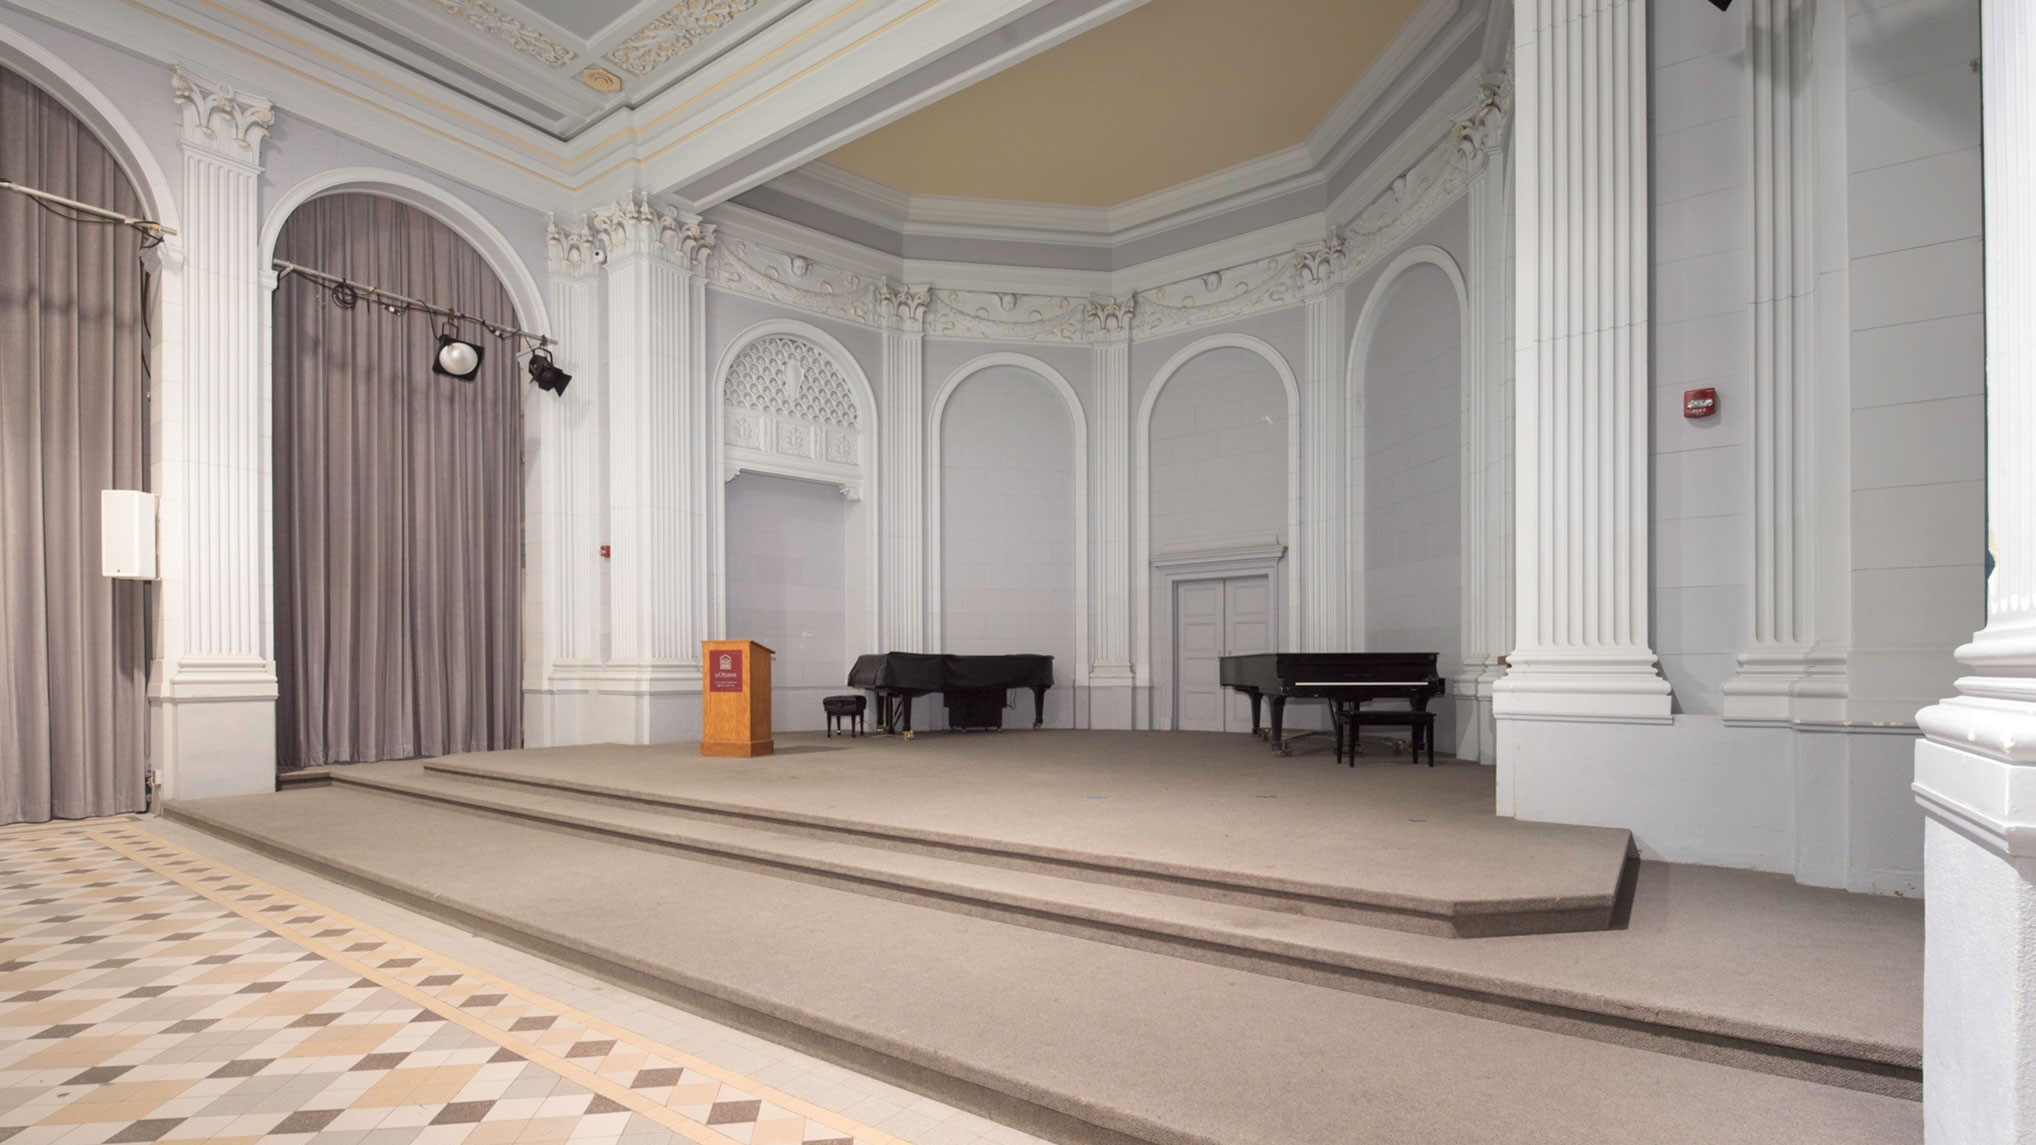 Carpeted stage with podium and two pianos